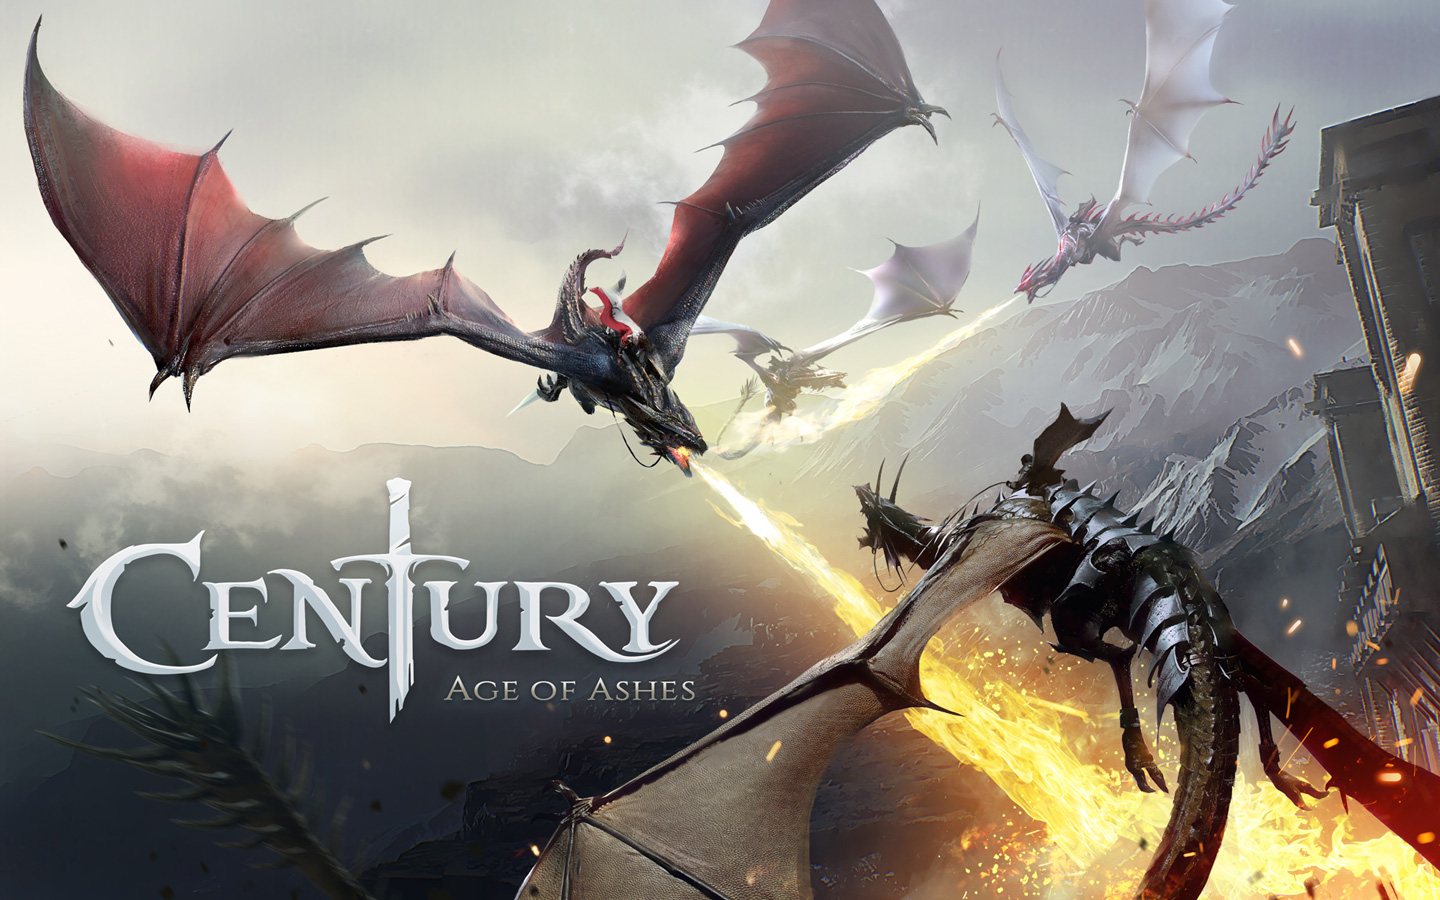 Free Century: Age of Ashes Wallpaper in 1440x900